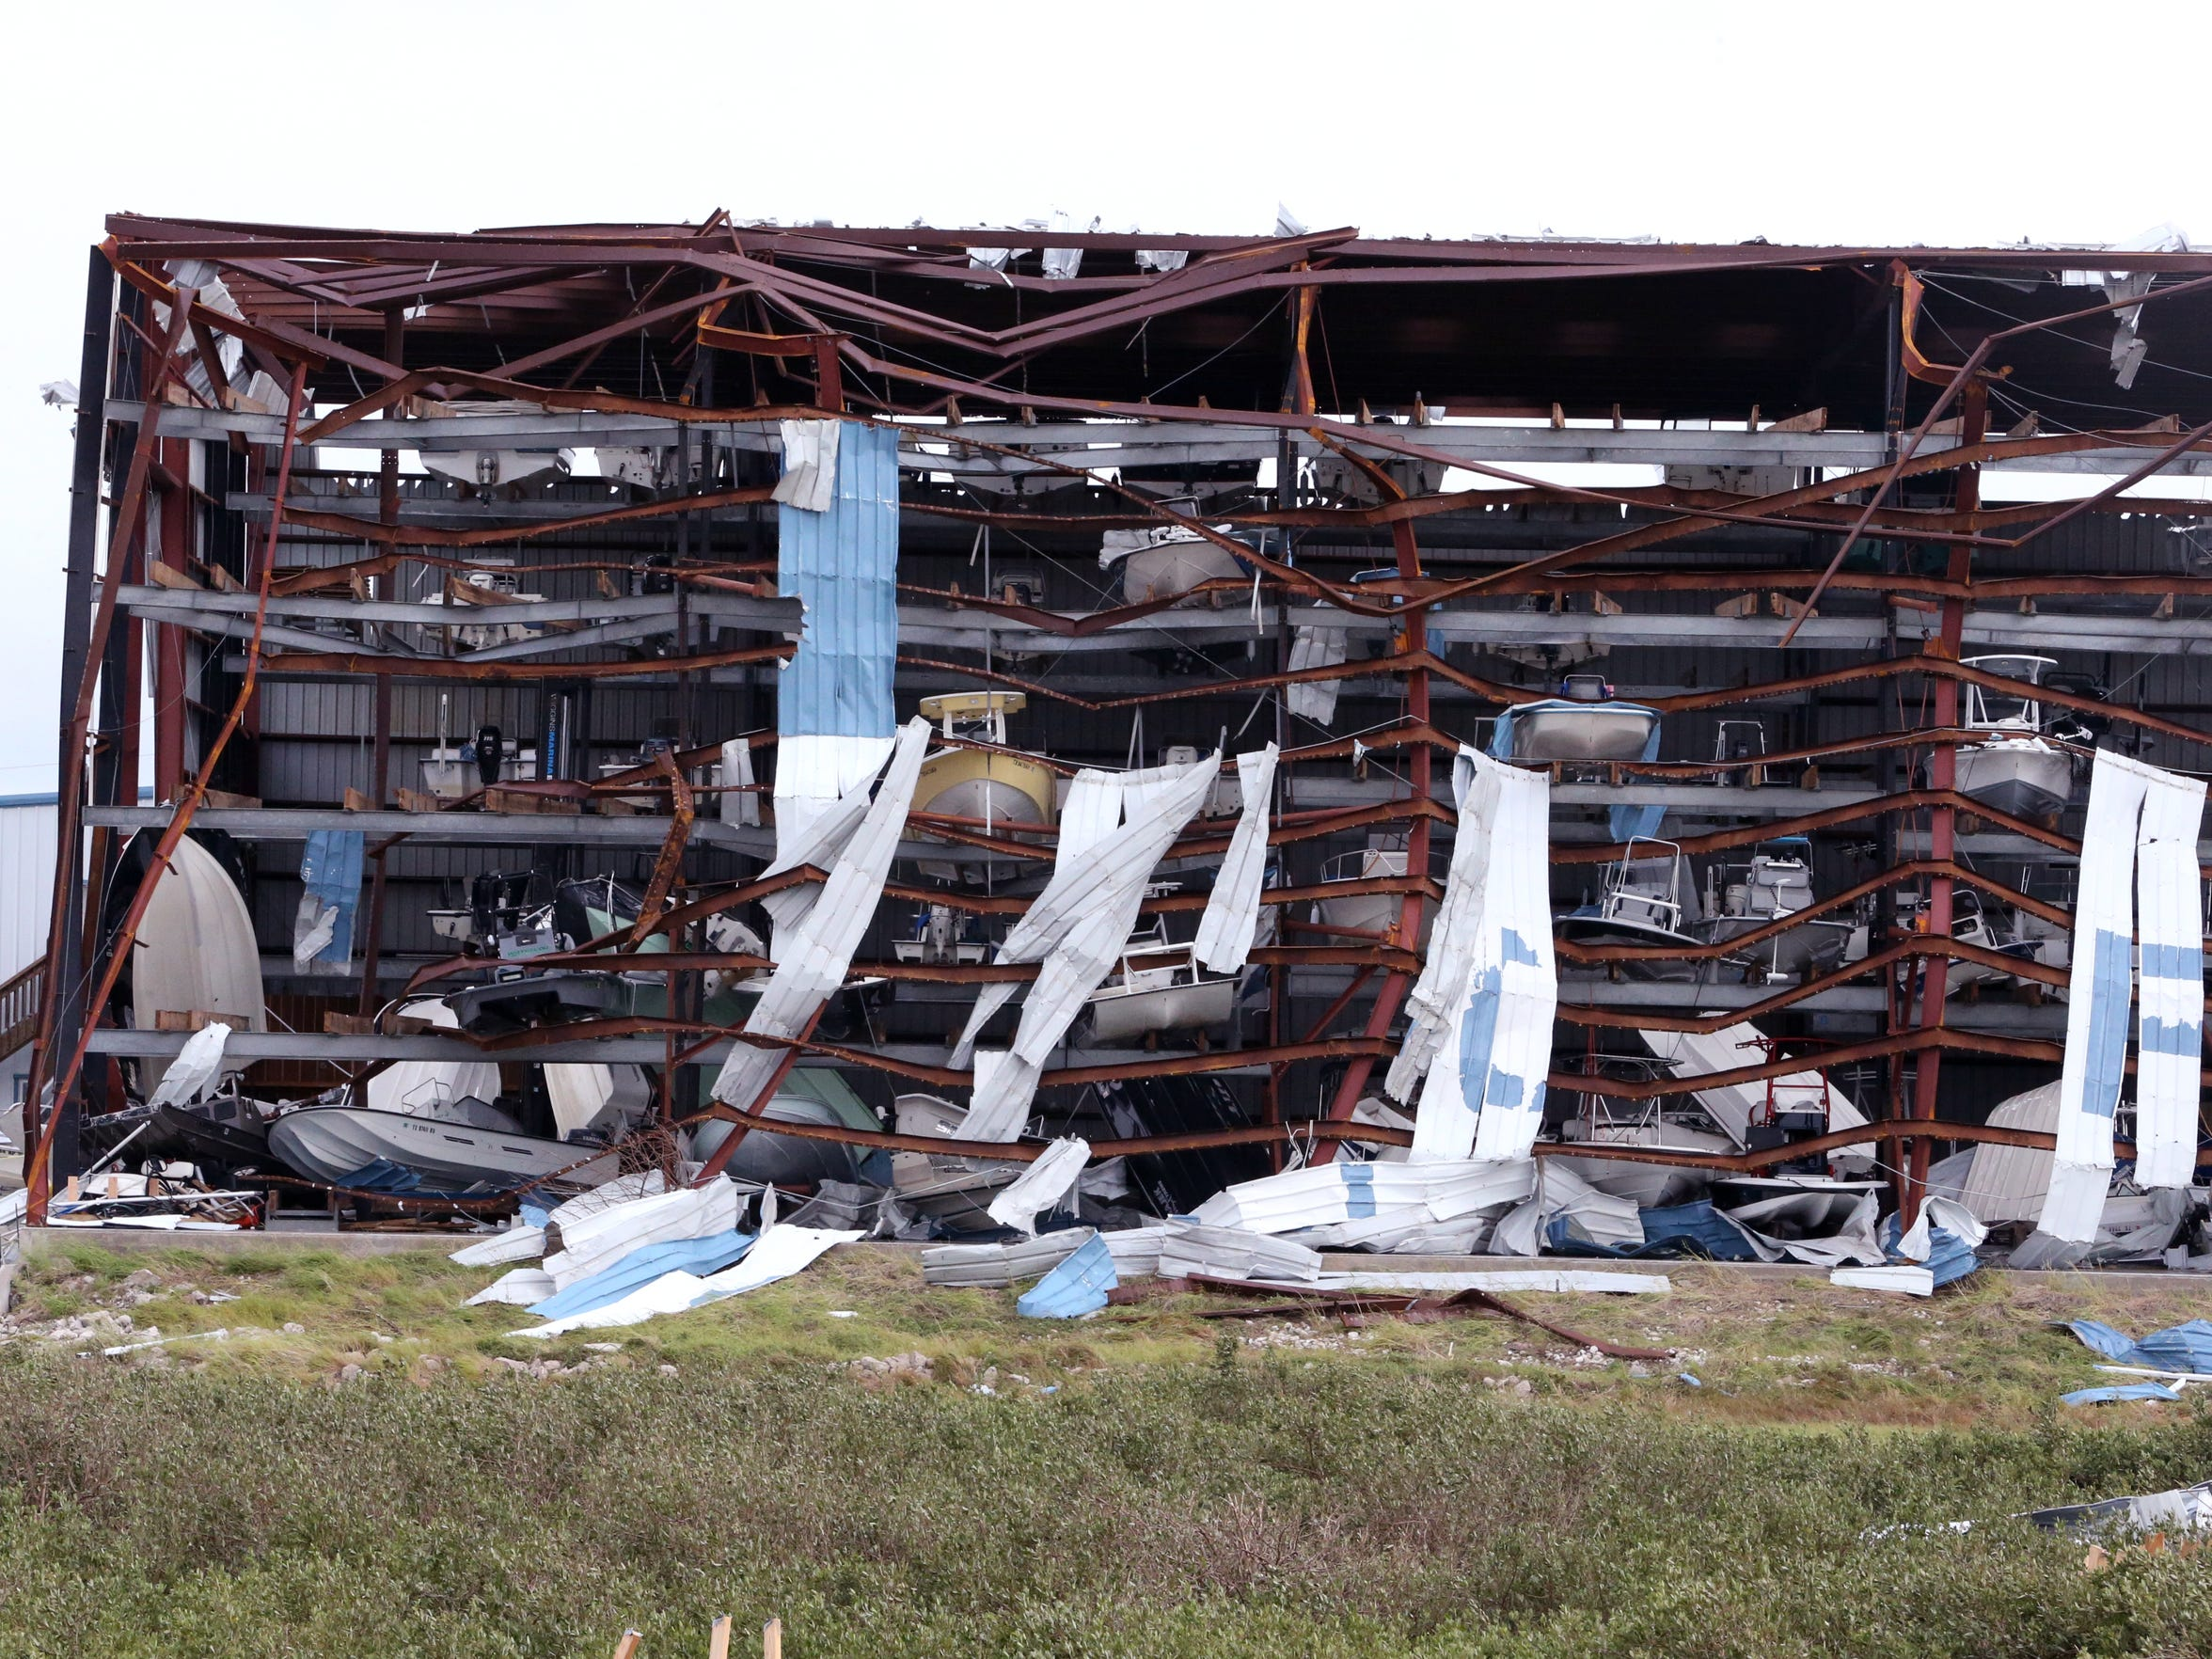 This boat storage facility in Cove Harbor in Rockport, TX, sustained considerable damage due to Hurricane Harvey. The facility, seen here on Sunday, August, 27, 2017, had boats on top of each other.